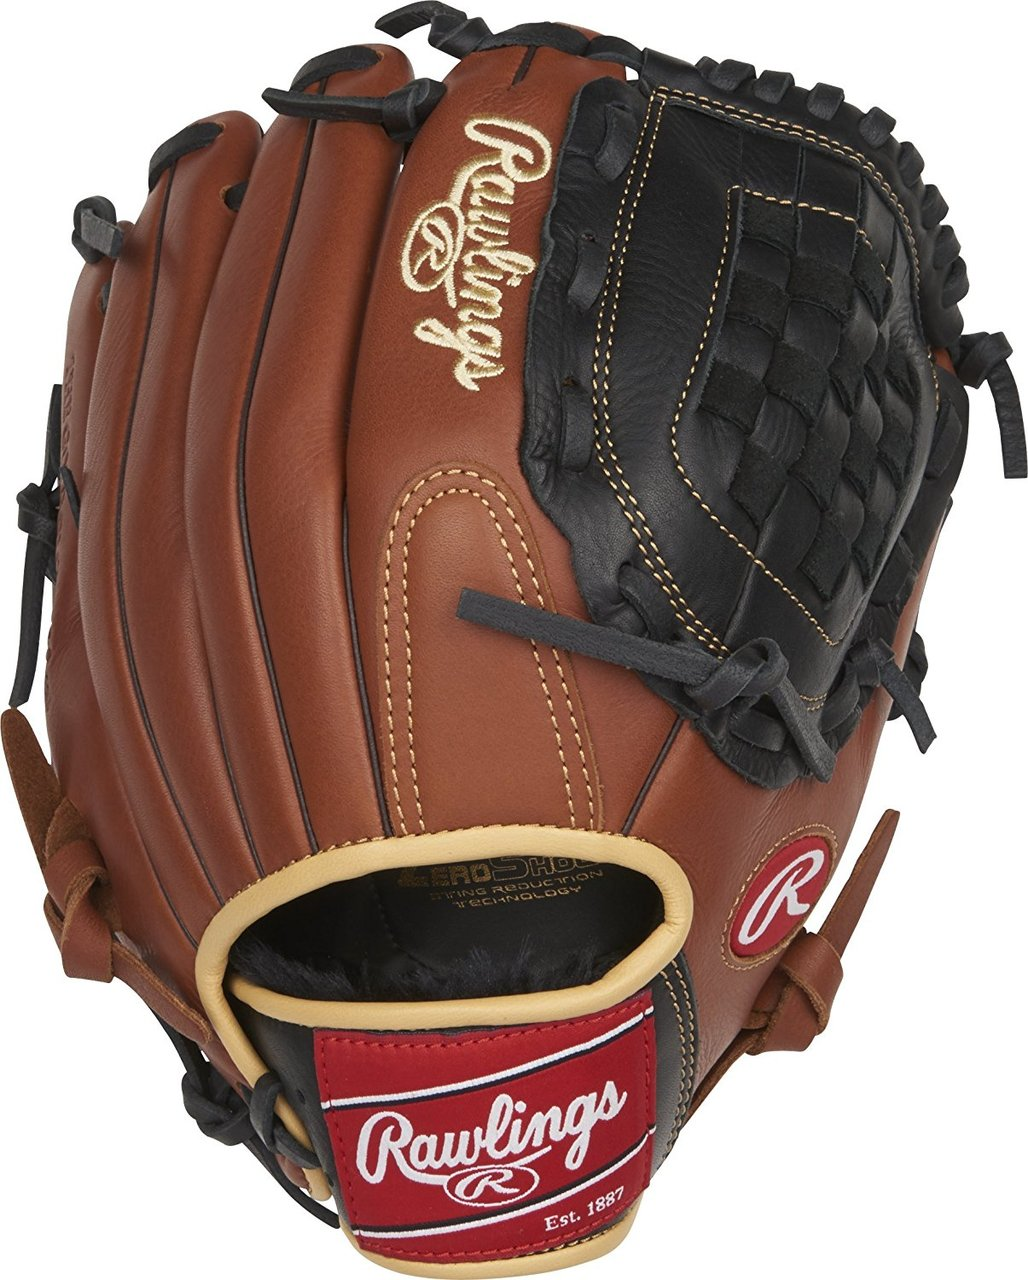 rawlings-sandlot-sl1200b-baseball-glove-12-right-hand-throw S1200B-RightHandThrow  083321369391 The Sandlot Series gloves feature an oiled pull-up leather that gives